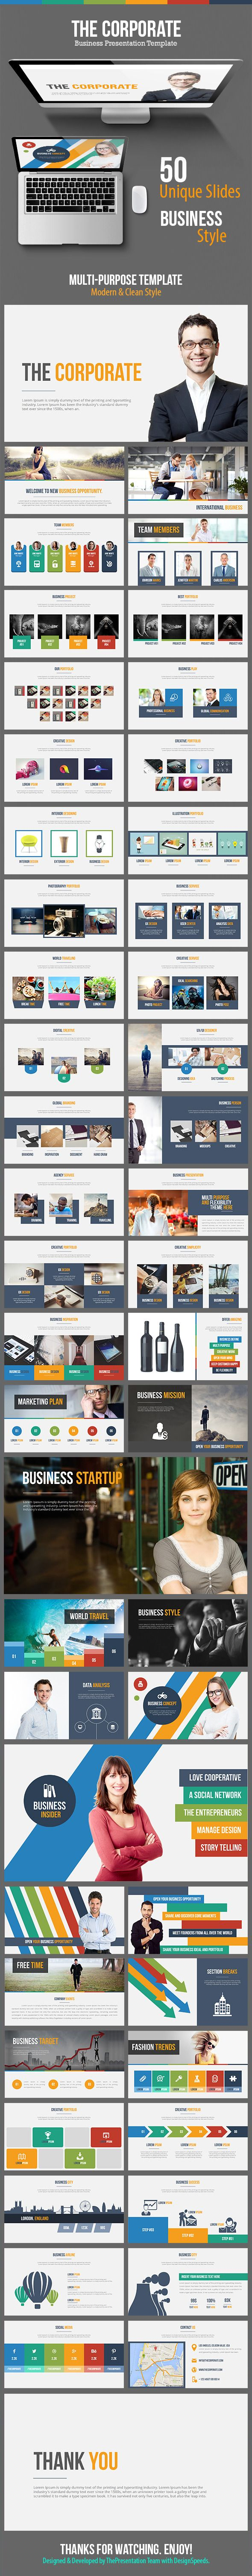 The Corporate - Business Keynote Template